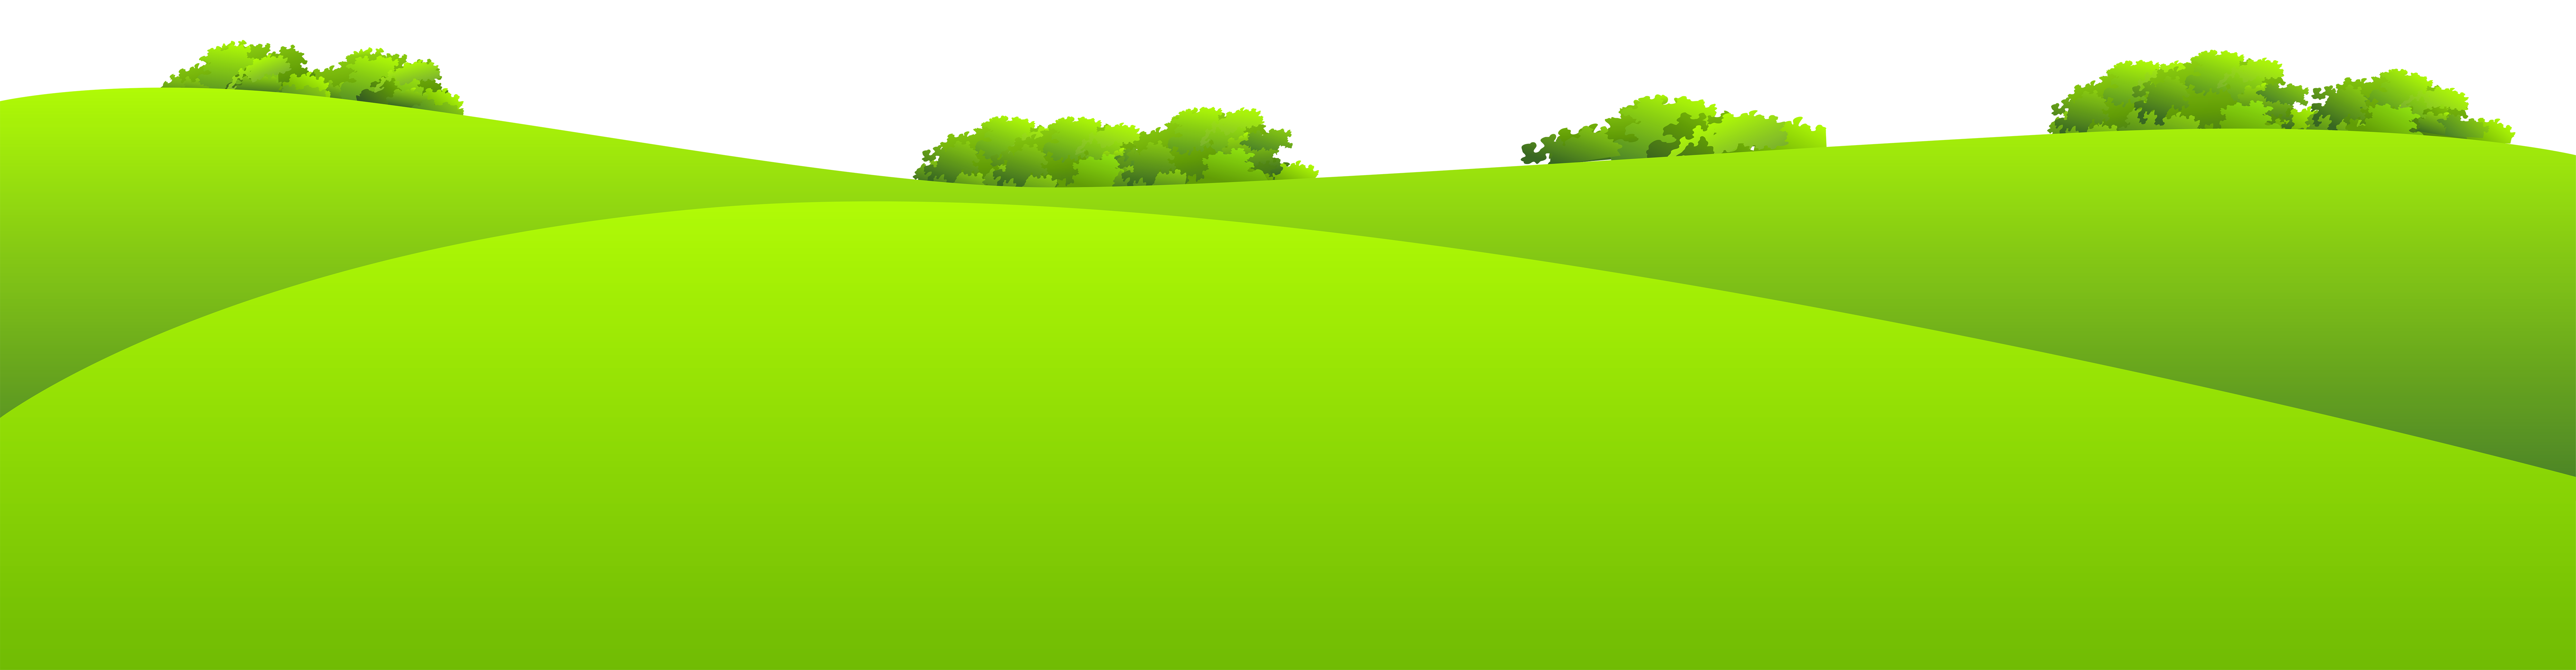 Hill clipart medow. Green meadow with shrubs